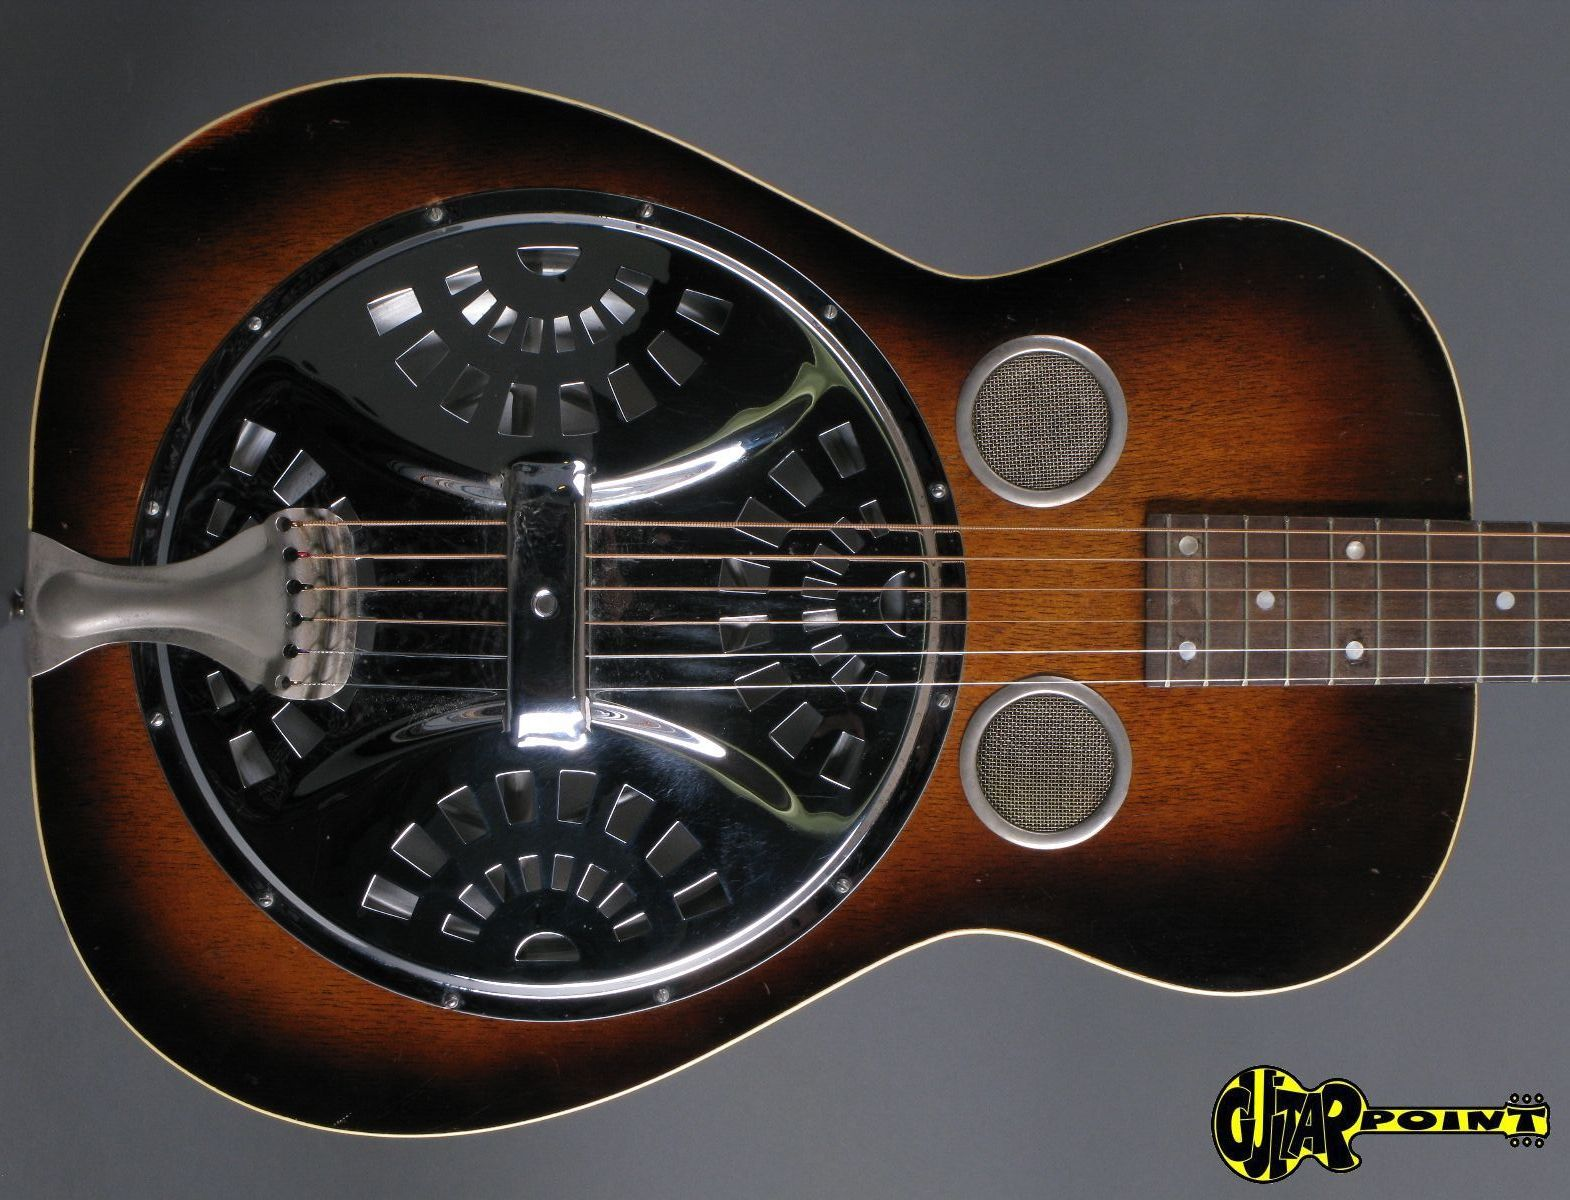 dobro model 36s 1932 sunburst guitar for sale guitarpoint. Black Bedroom Furniture Sets. Home Design Ideas